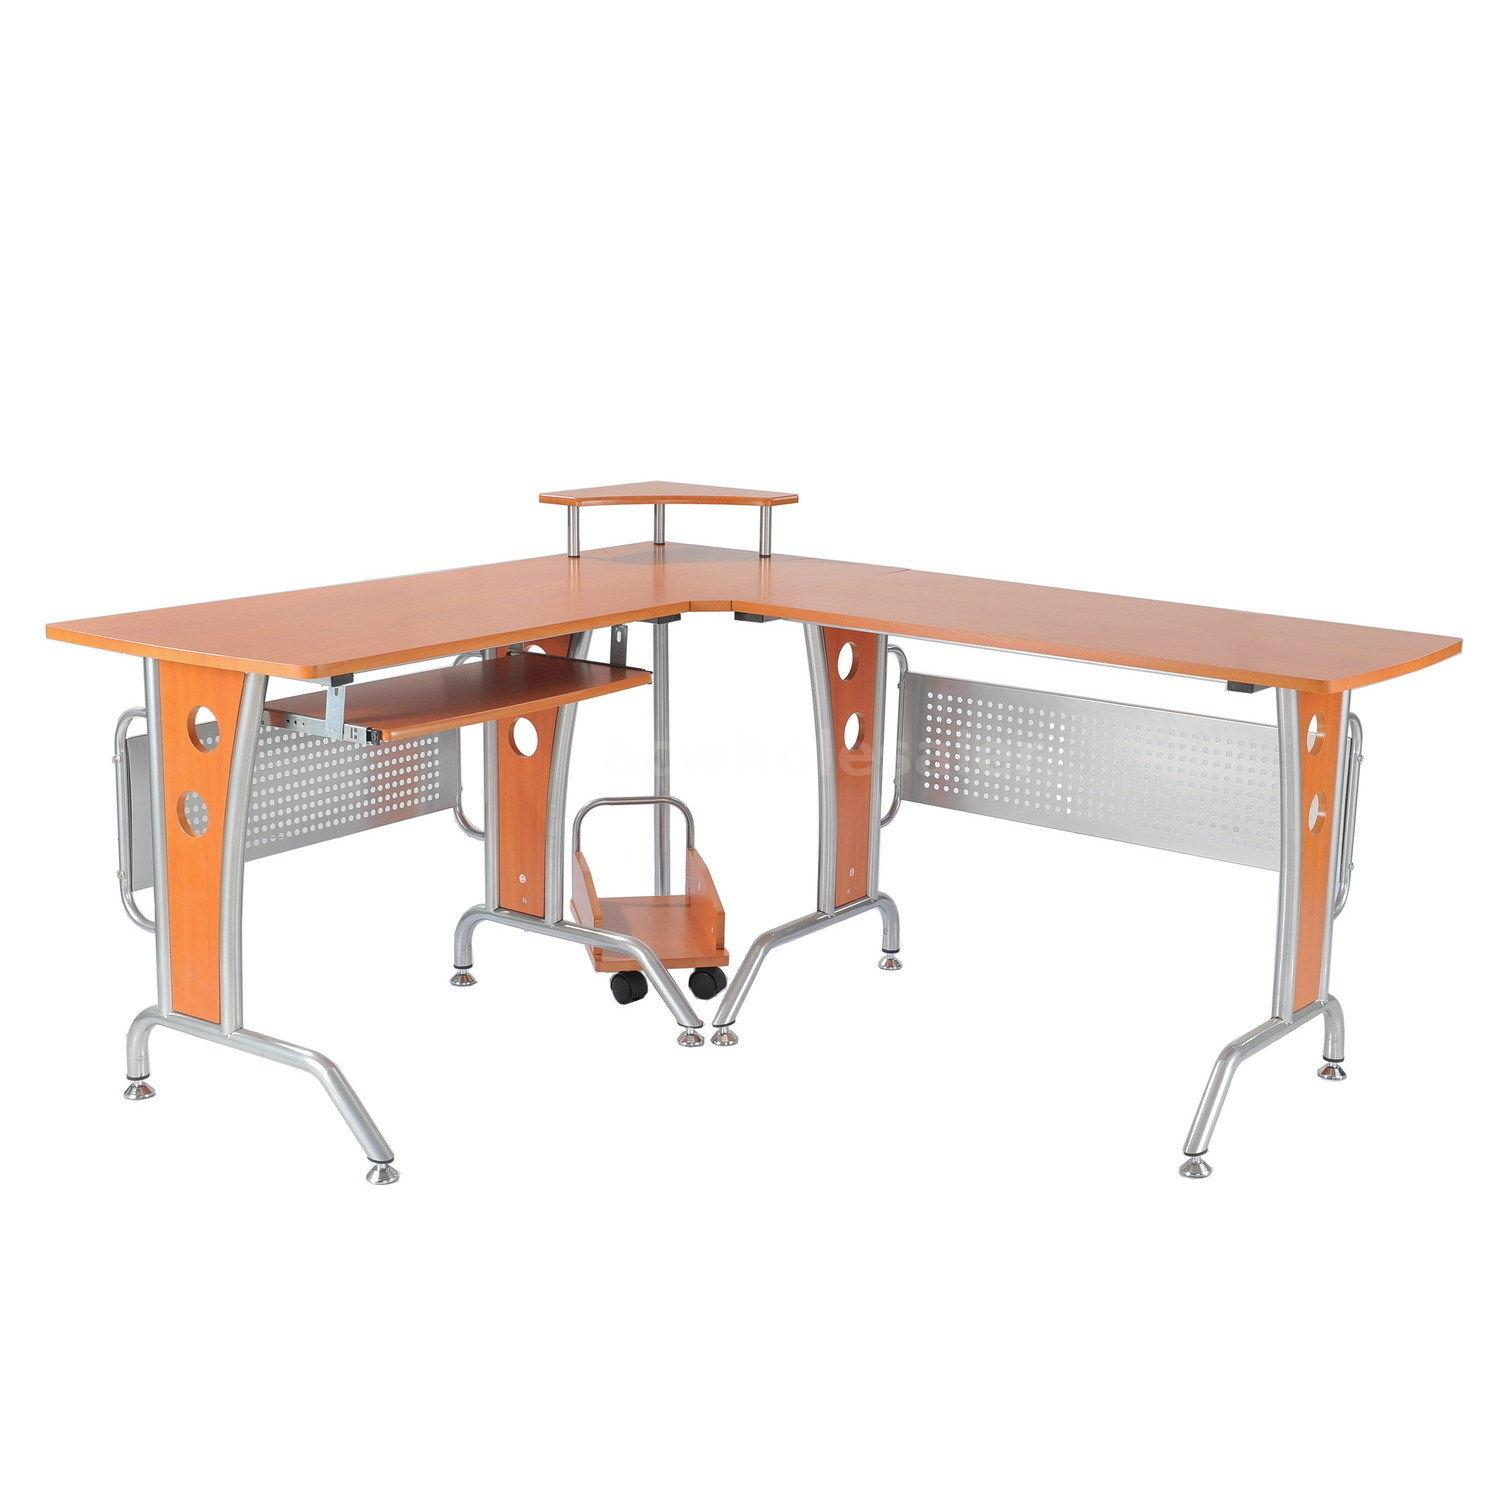 Details About L Shaped Corner Computer Office Desk With Hutch Storage And Keyboard Tray J2q3